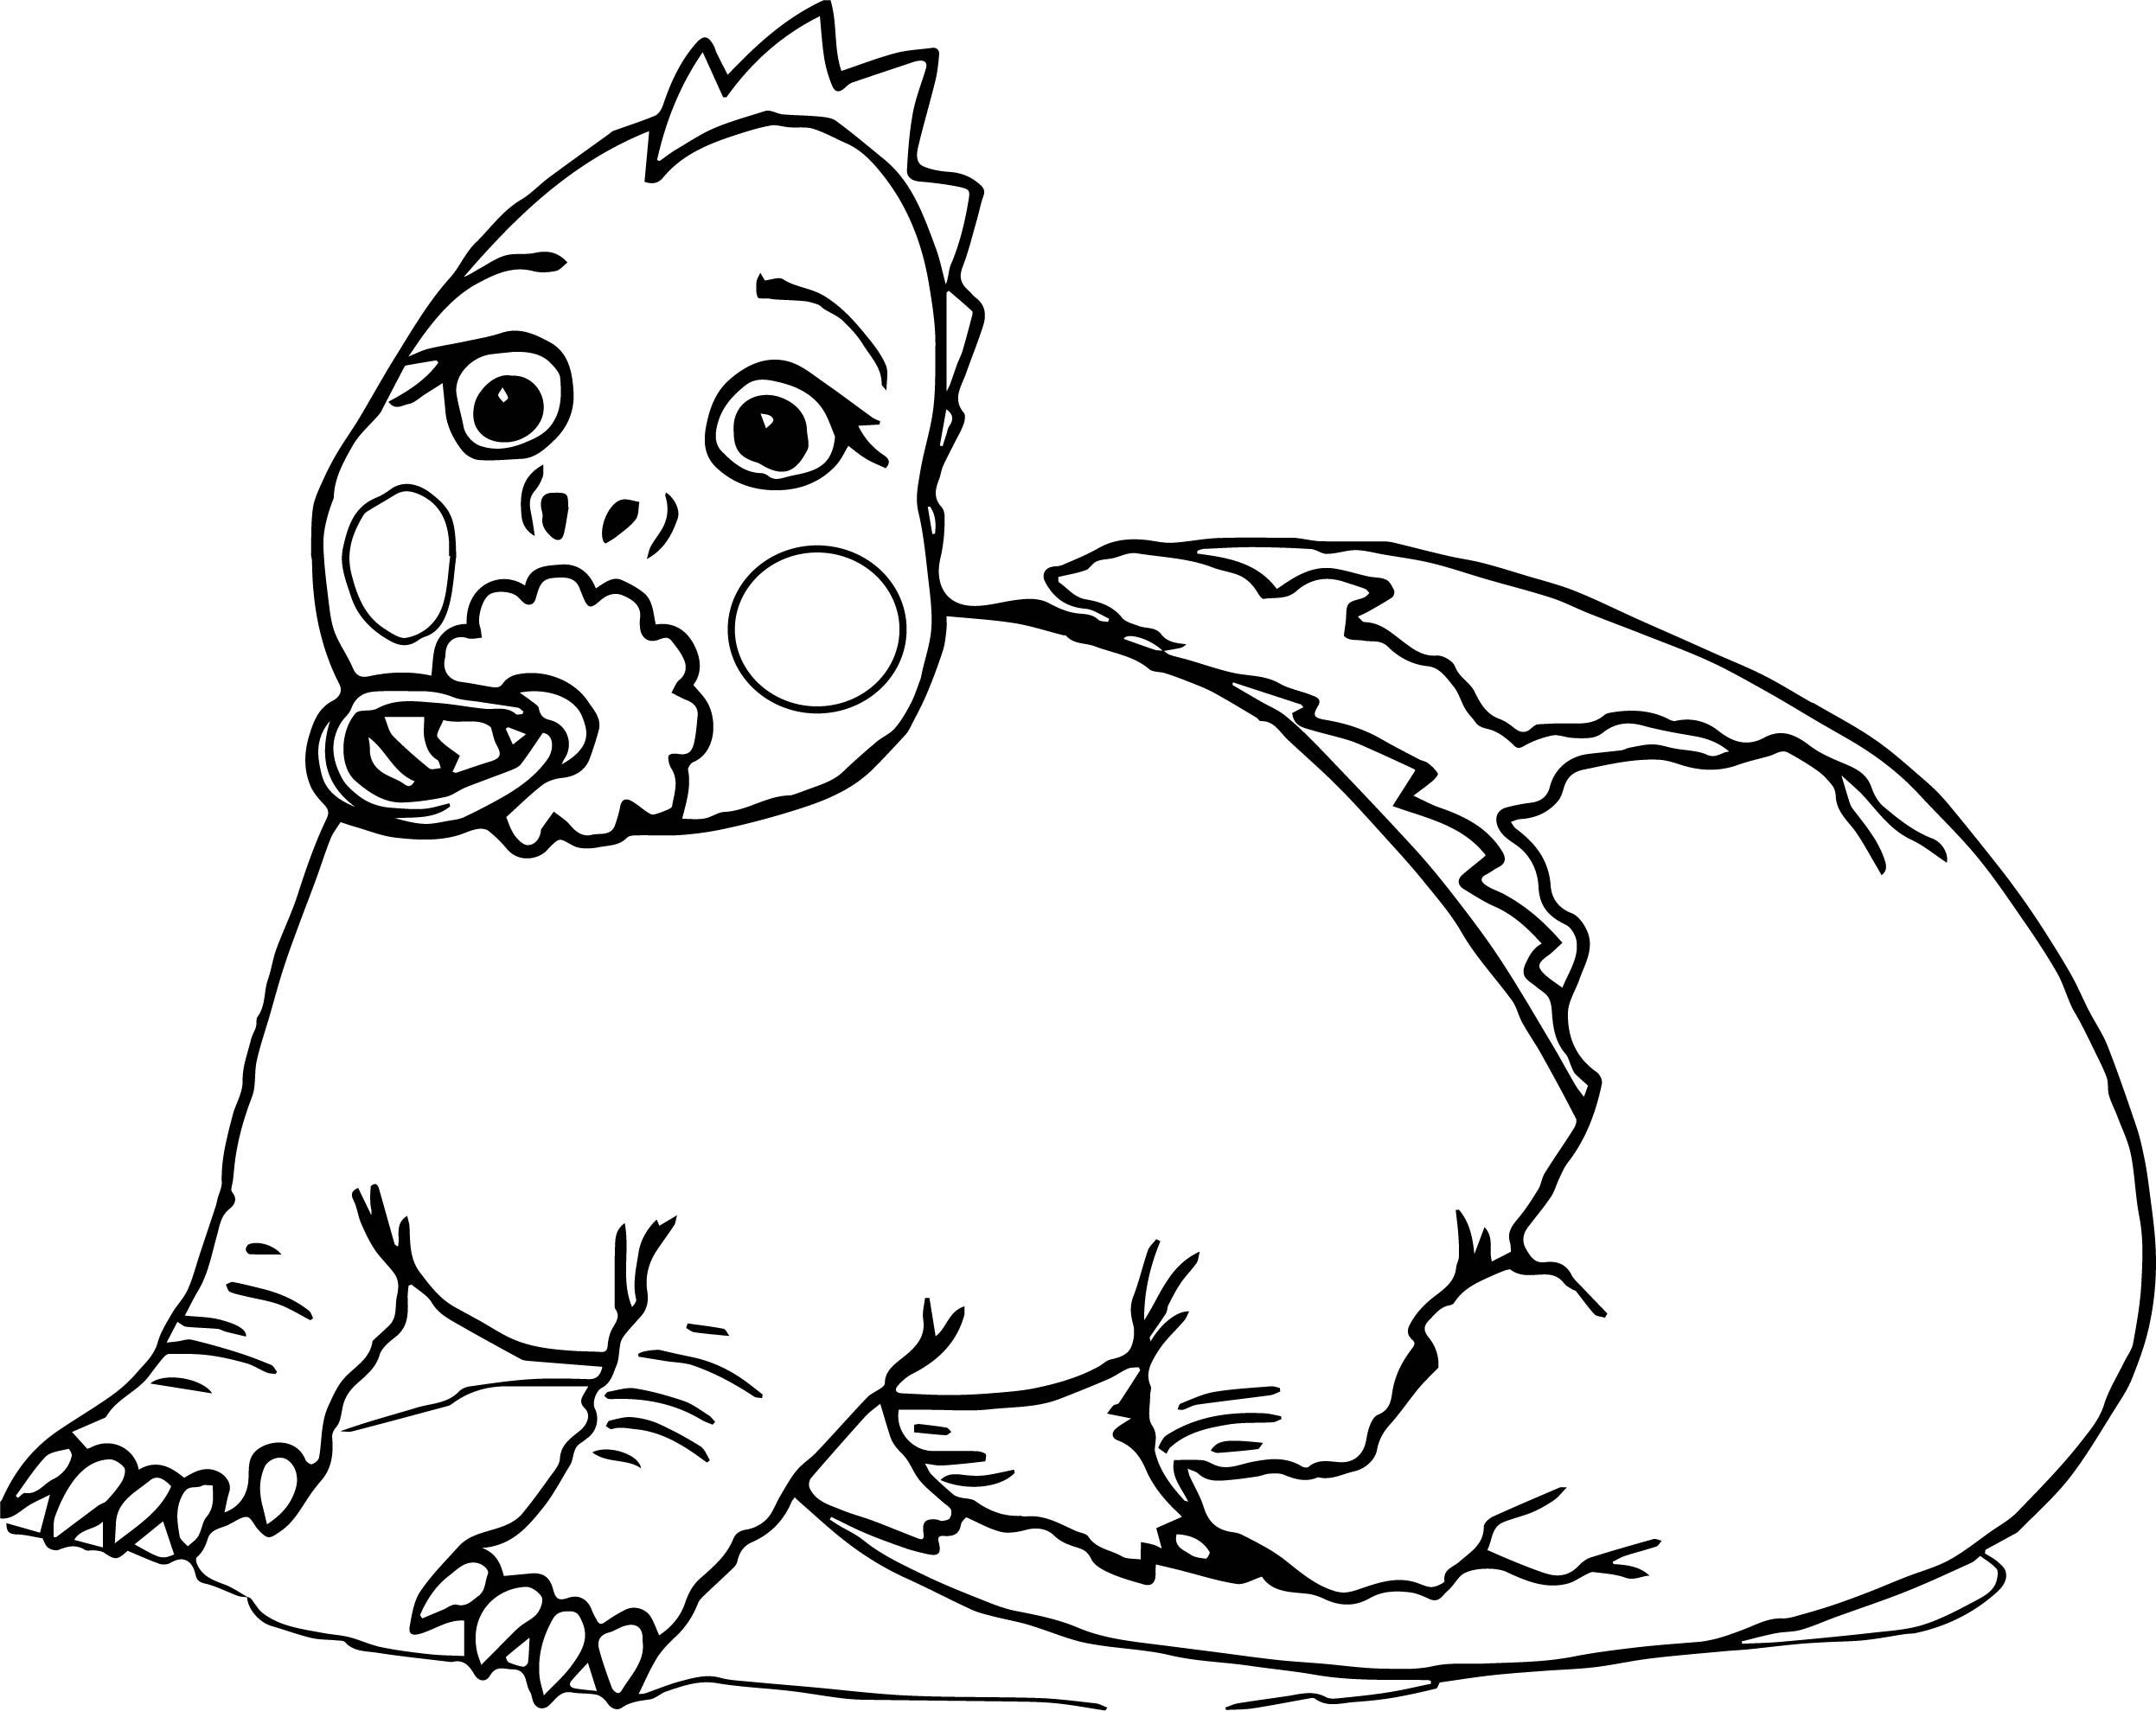 nice Baby Dinosaur Broken Egg Coloring Page | wecoloringpage | Pinterest